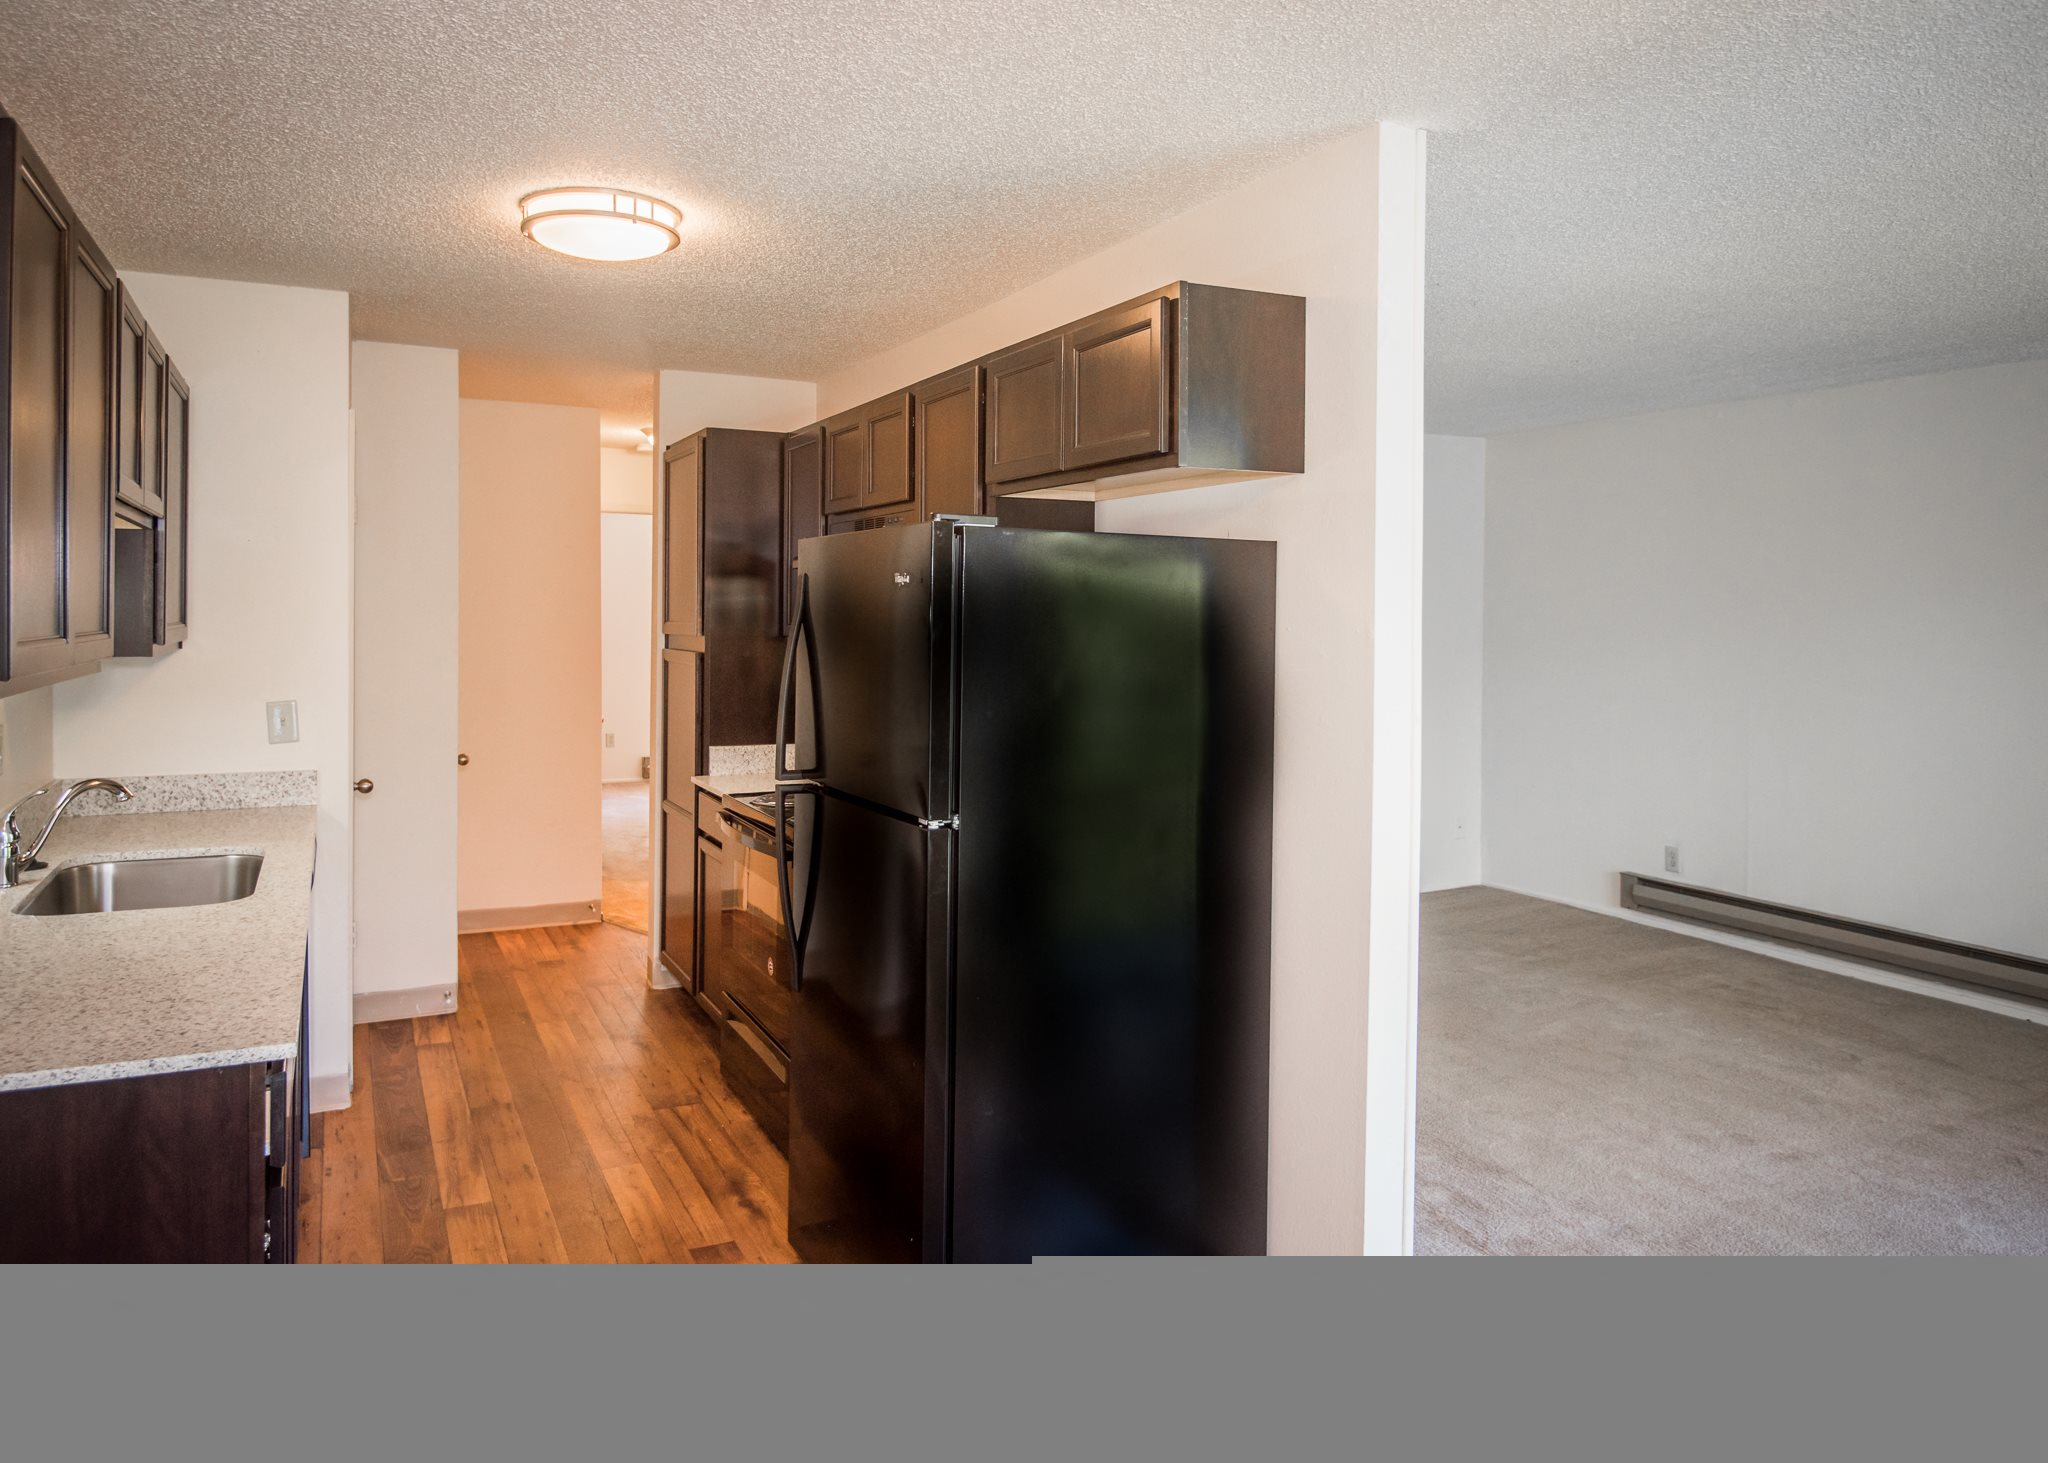 Shadow Hills Vacant Apartment Original Upgraded Kitchen Side Profile